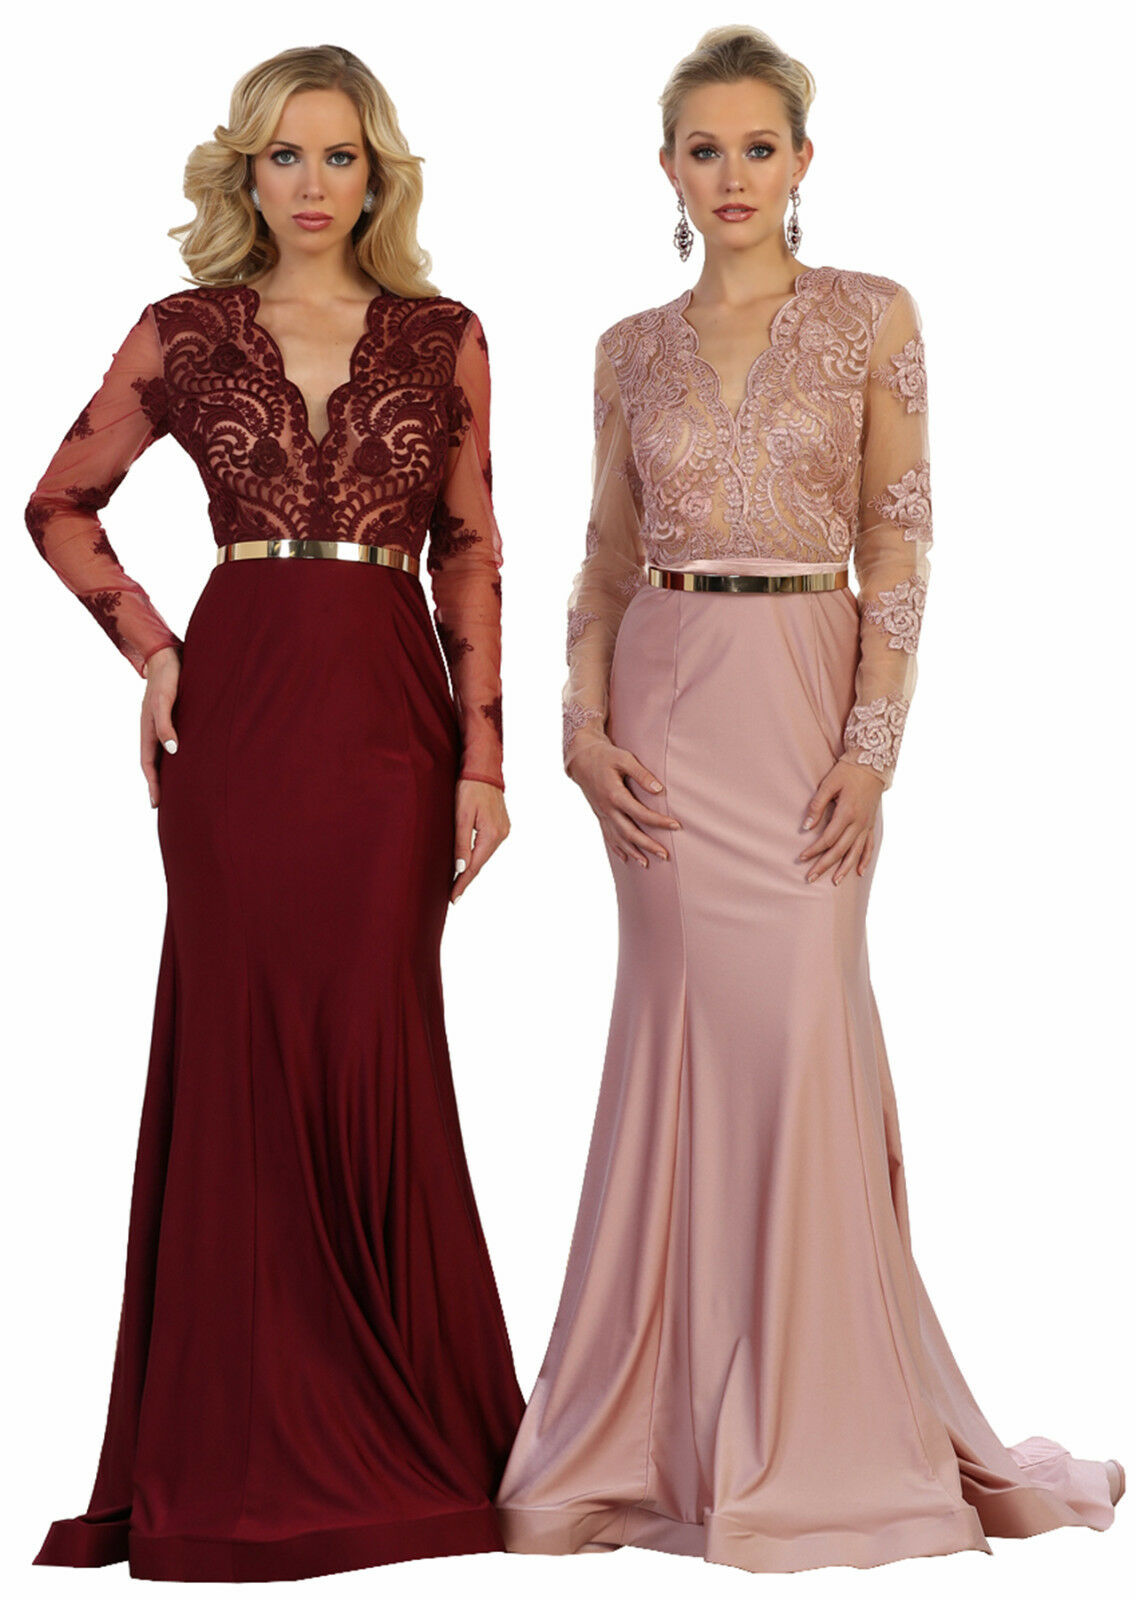 NEW LONG SLEEVE Evening Gown Stretchy Red Carpet Prom Dance Formal ...